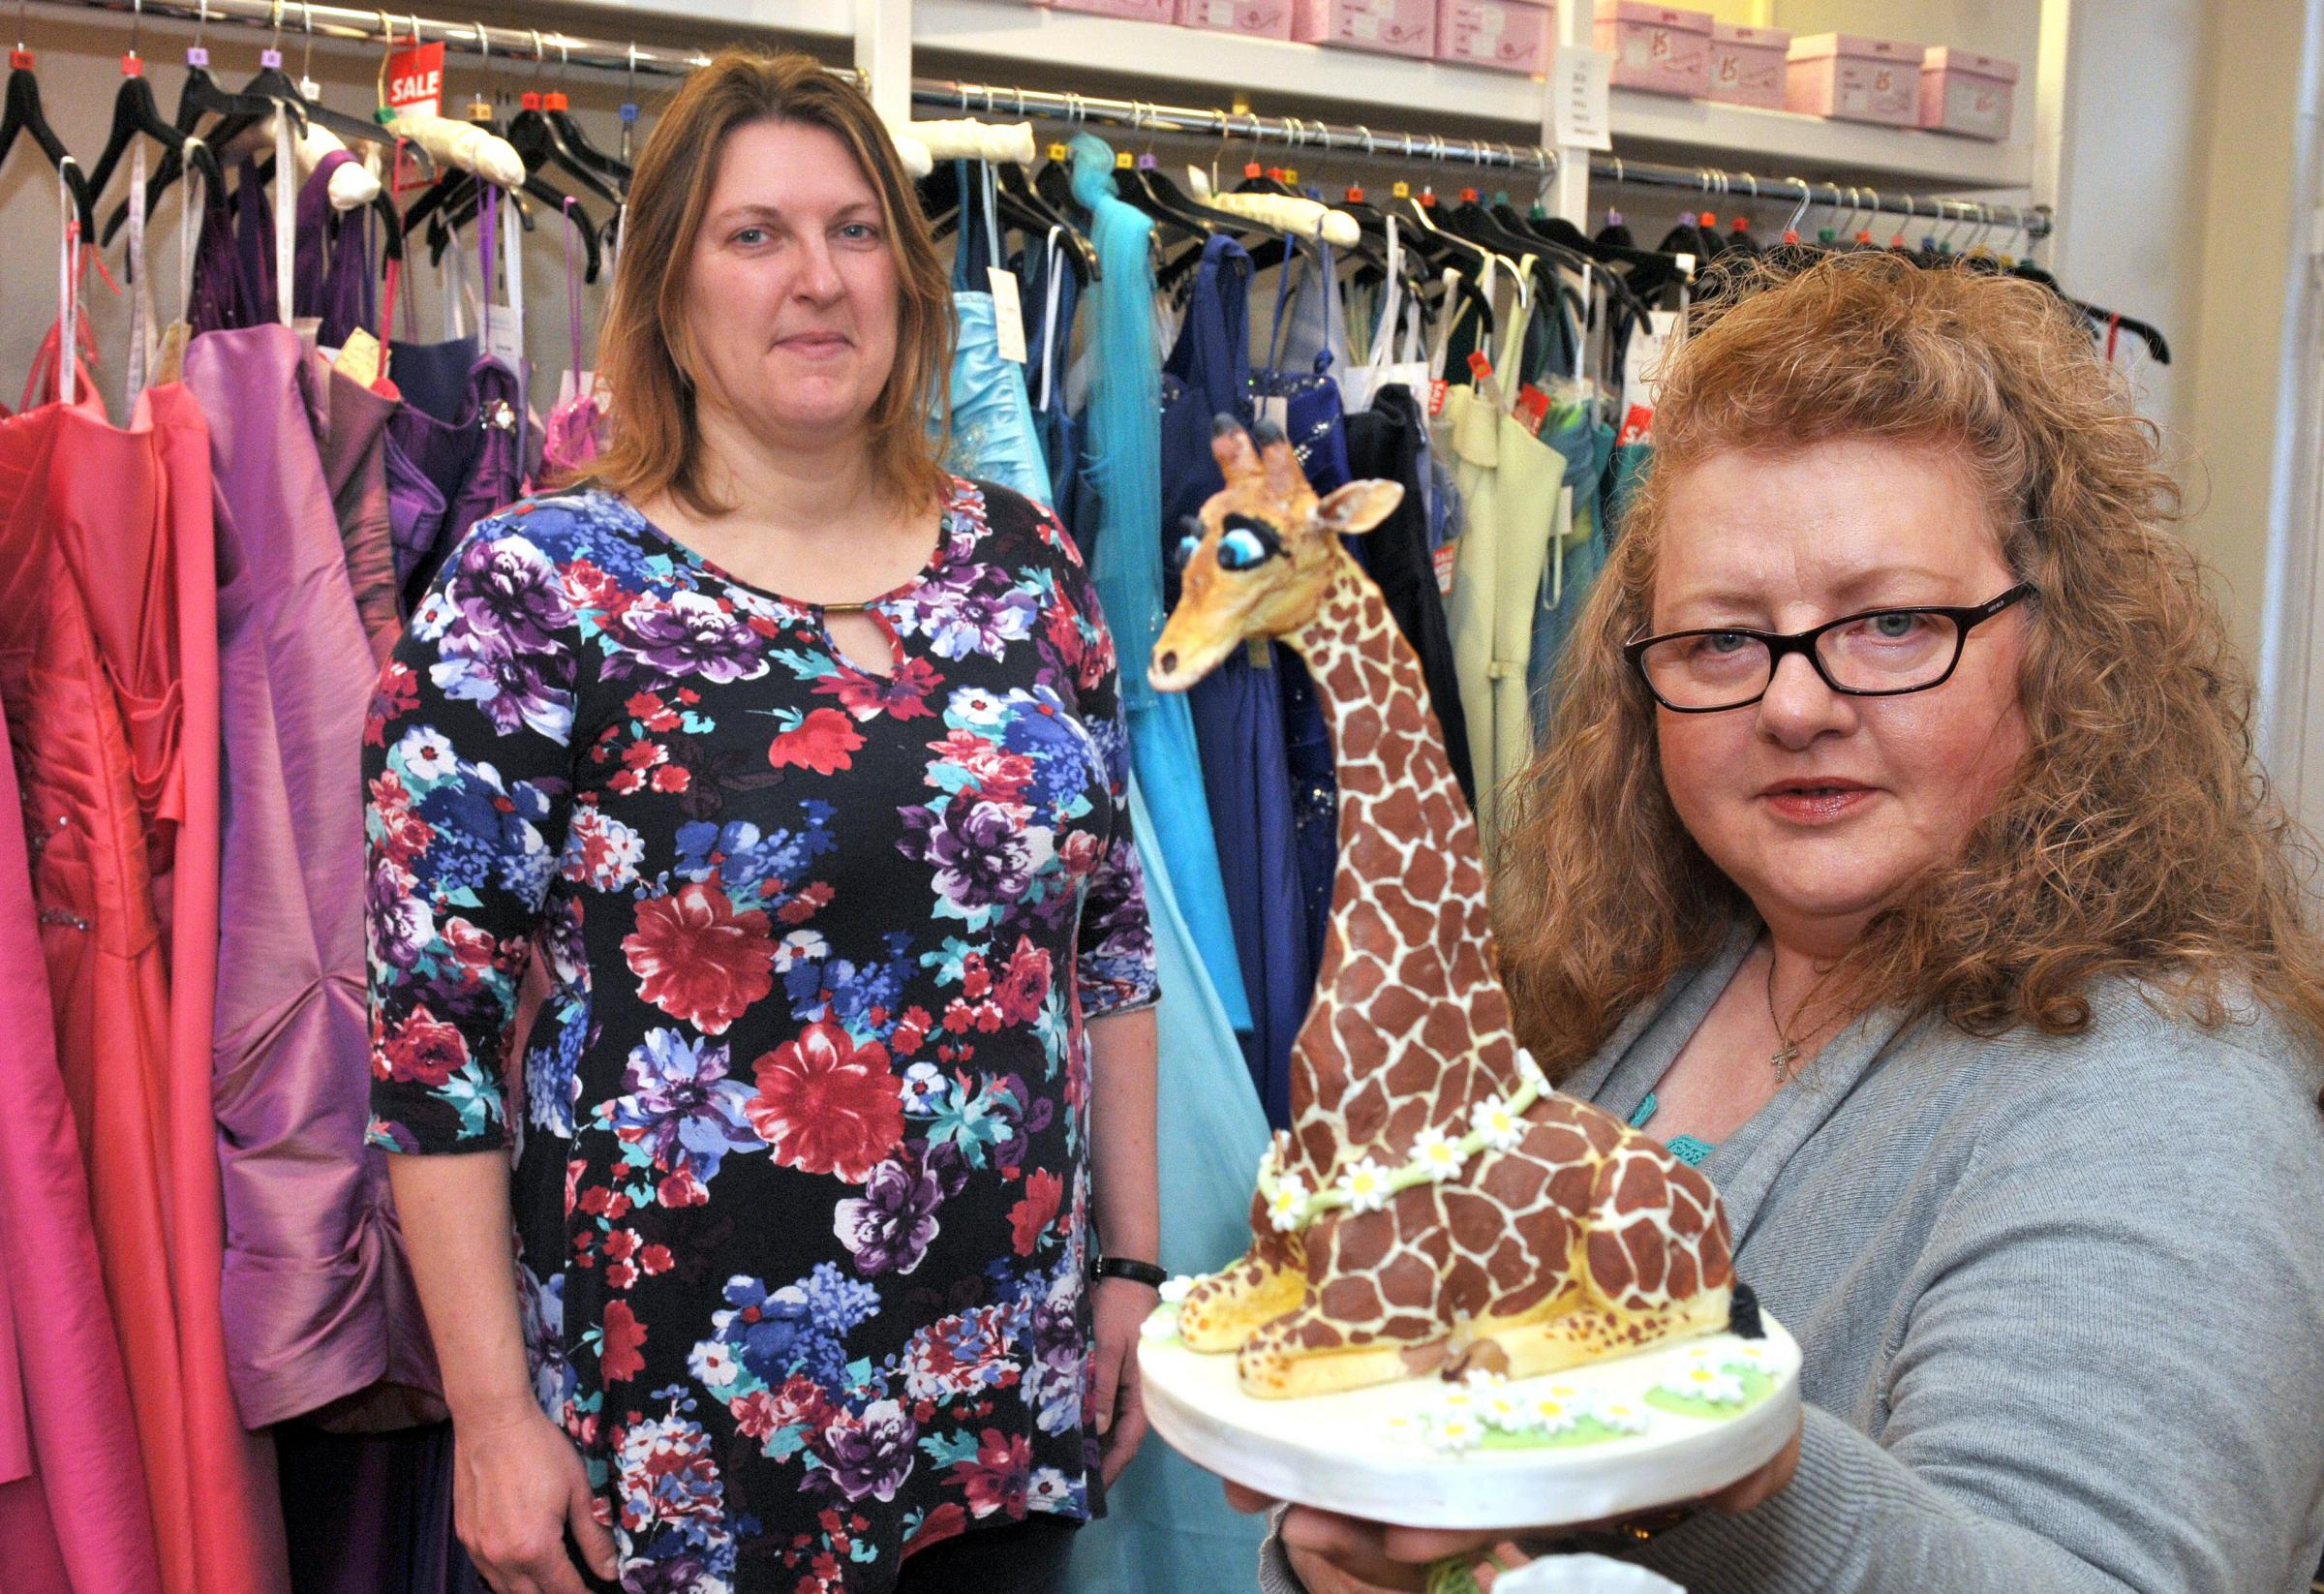 Josie Abbey (right) holds a decorative giraffe cake at Perfect Day bridal salon Malton watched by Mell JEFFERY (correct).Josie wants to open a Malton branch of the British Sugar Craft Guild.